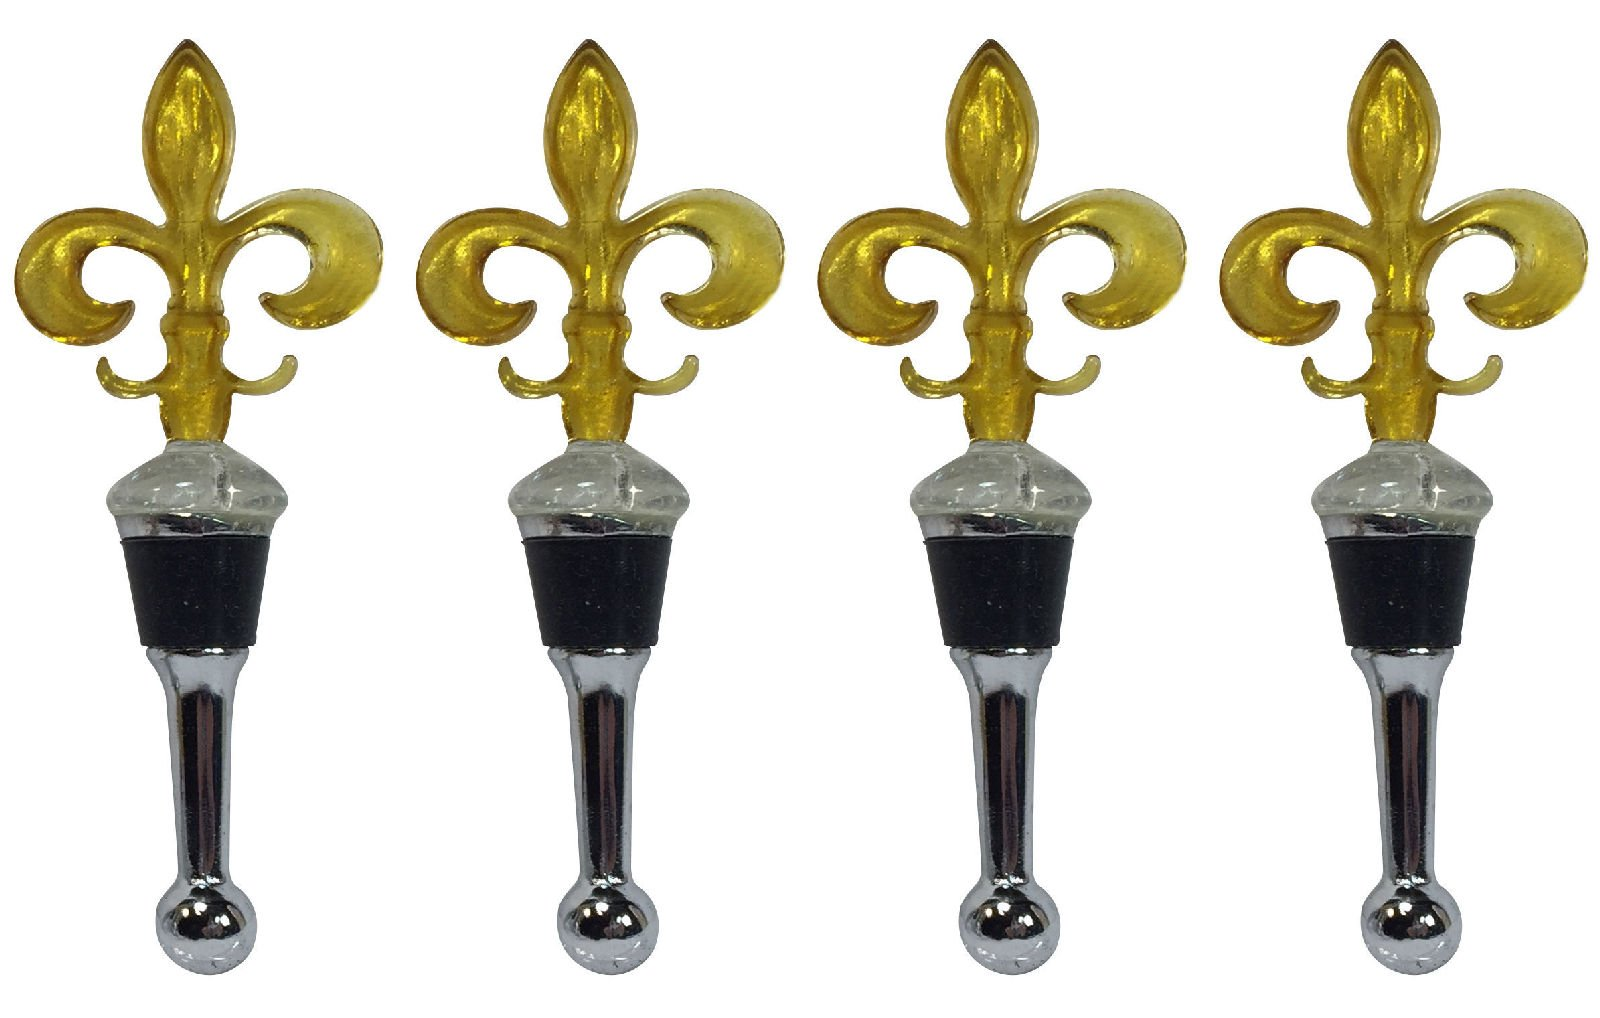 Manual Gold Glass Fleur de Lis Wine Bottle Stoppers - Set of 4